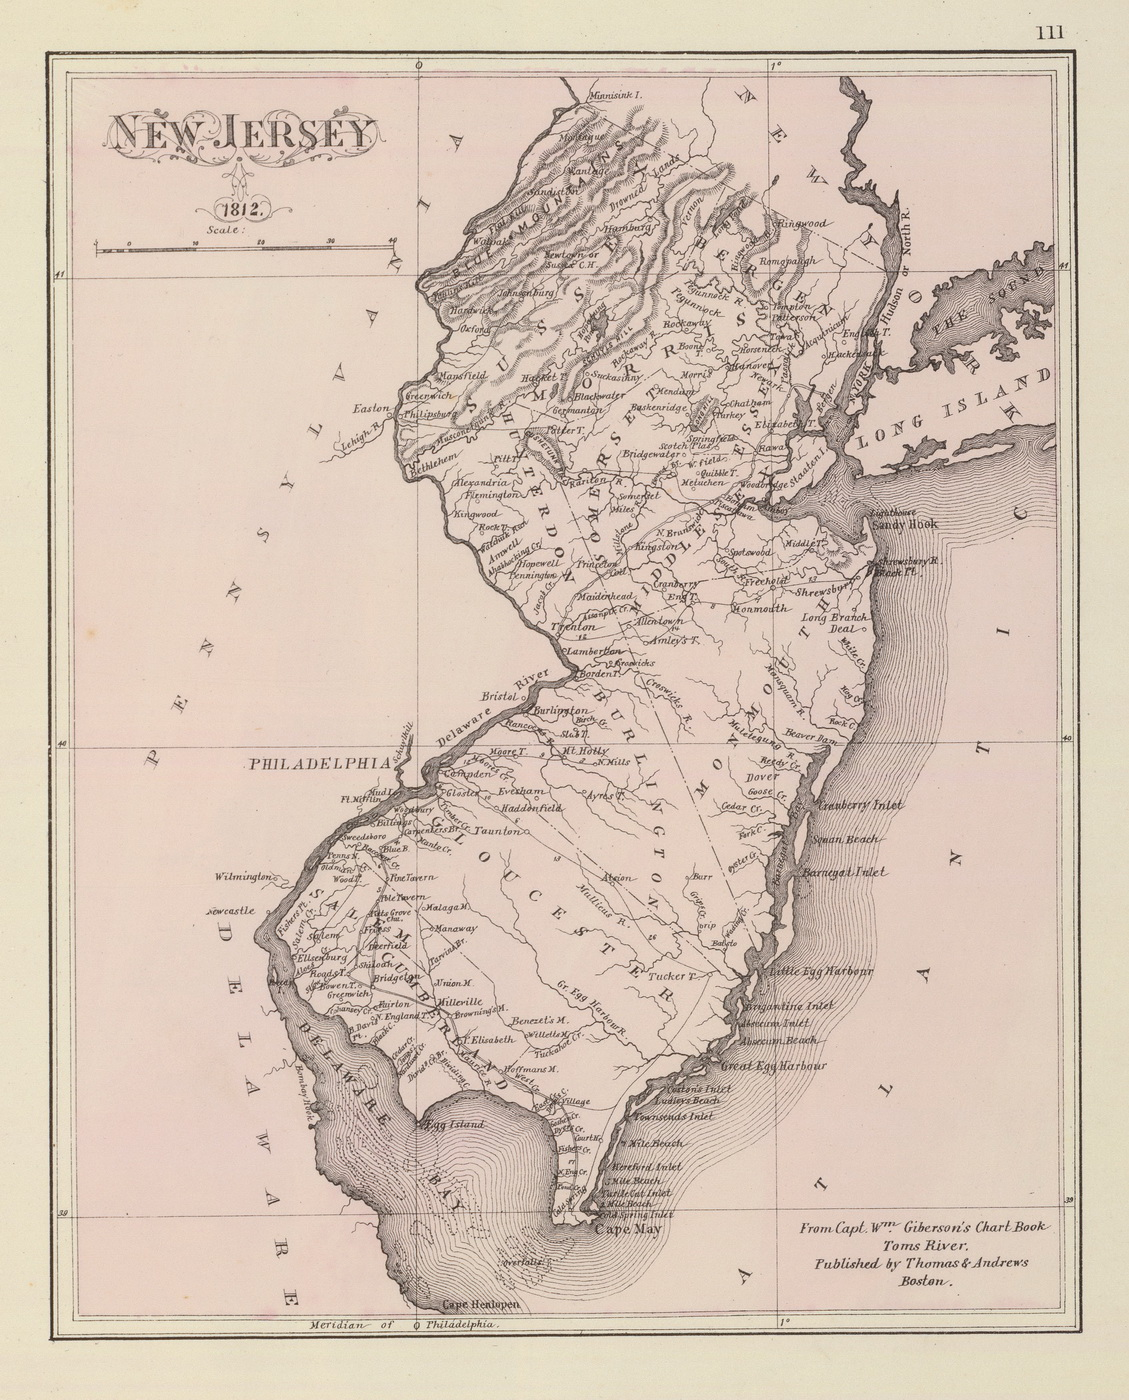 New Jersey State Maps Page - Newjersey map